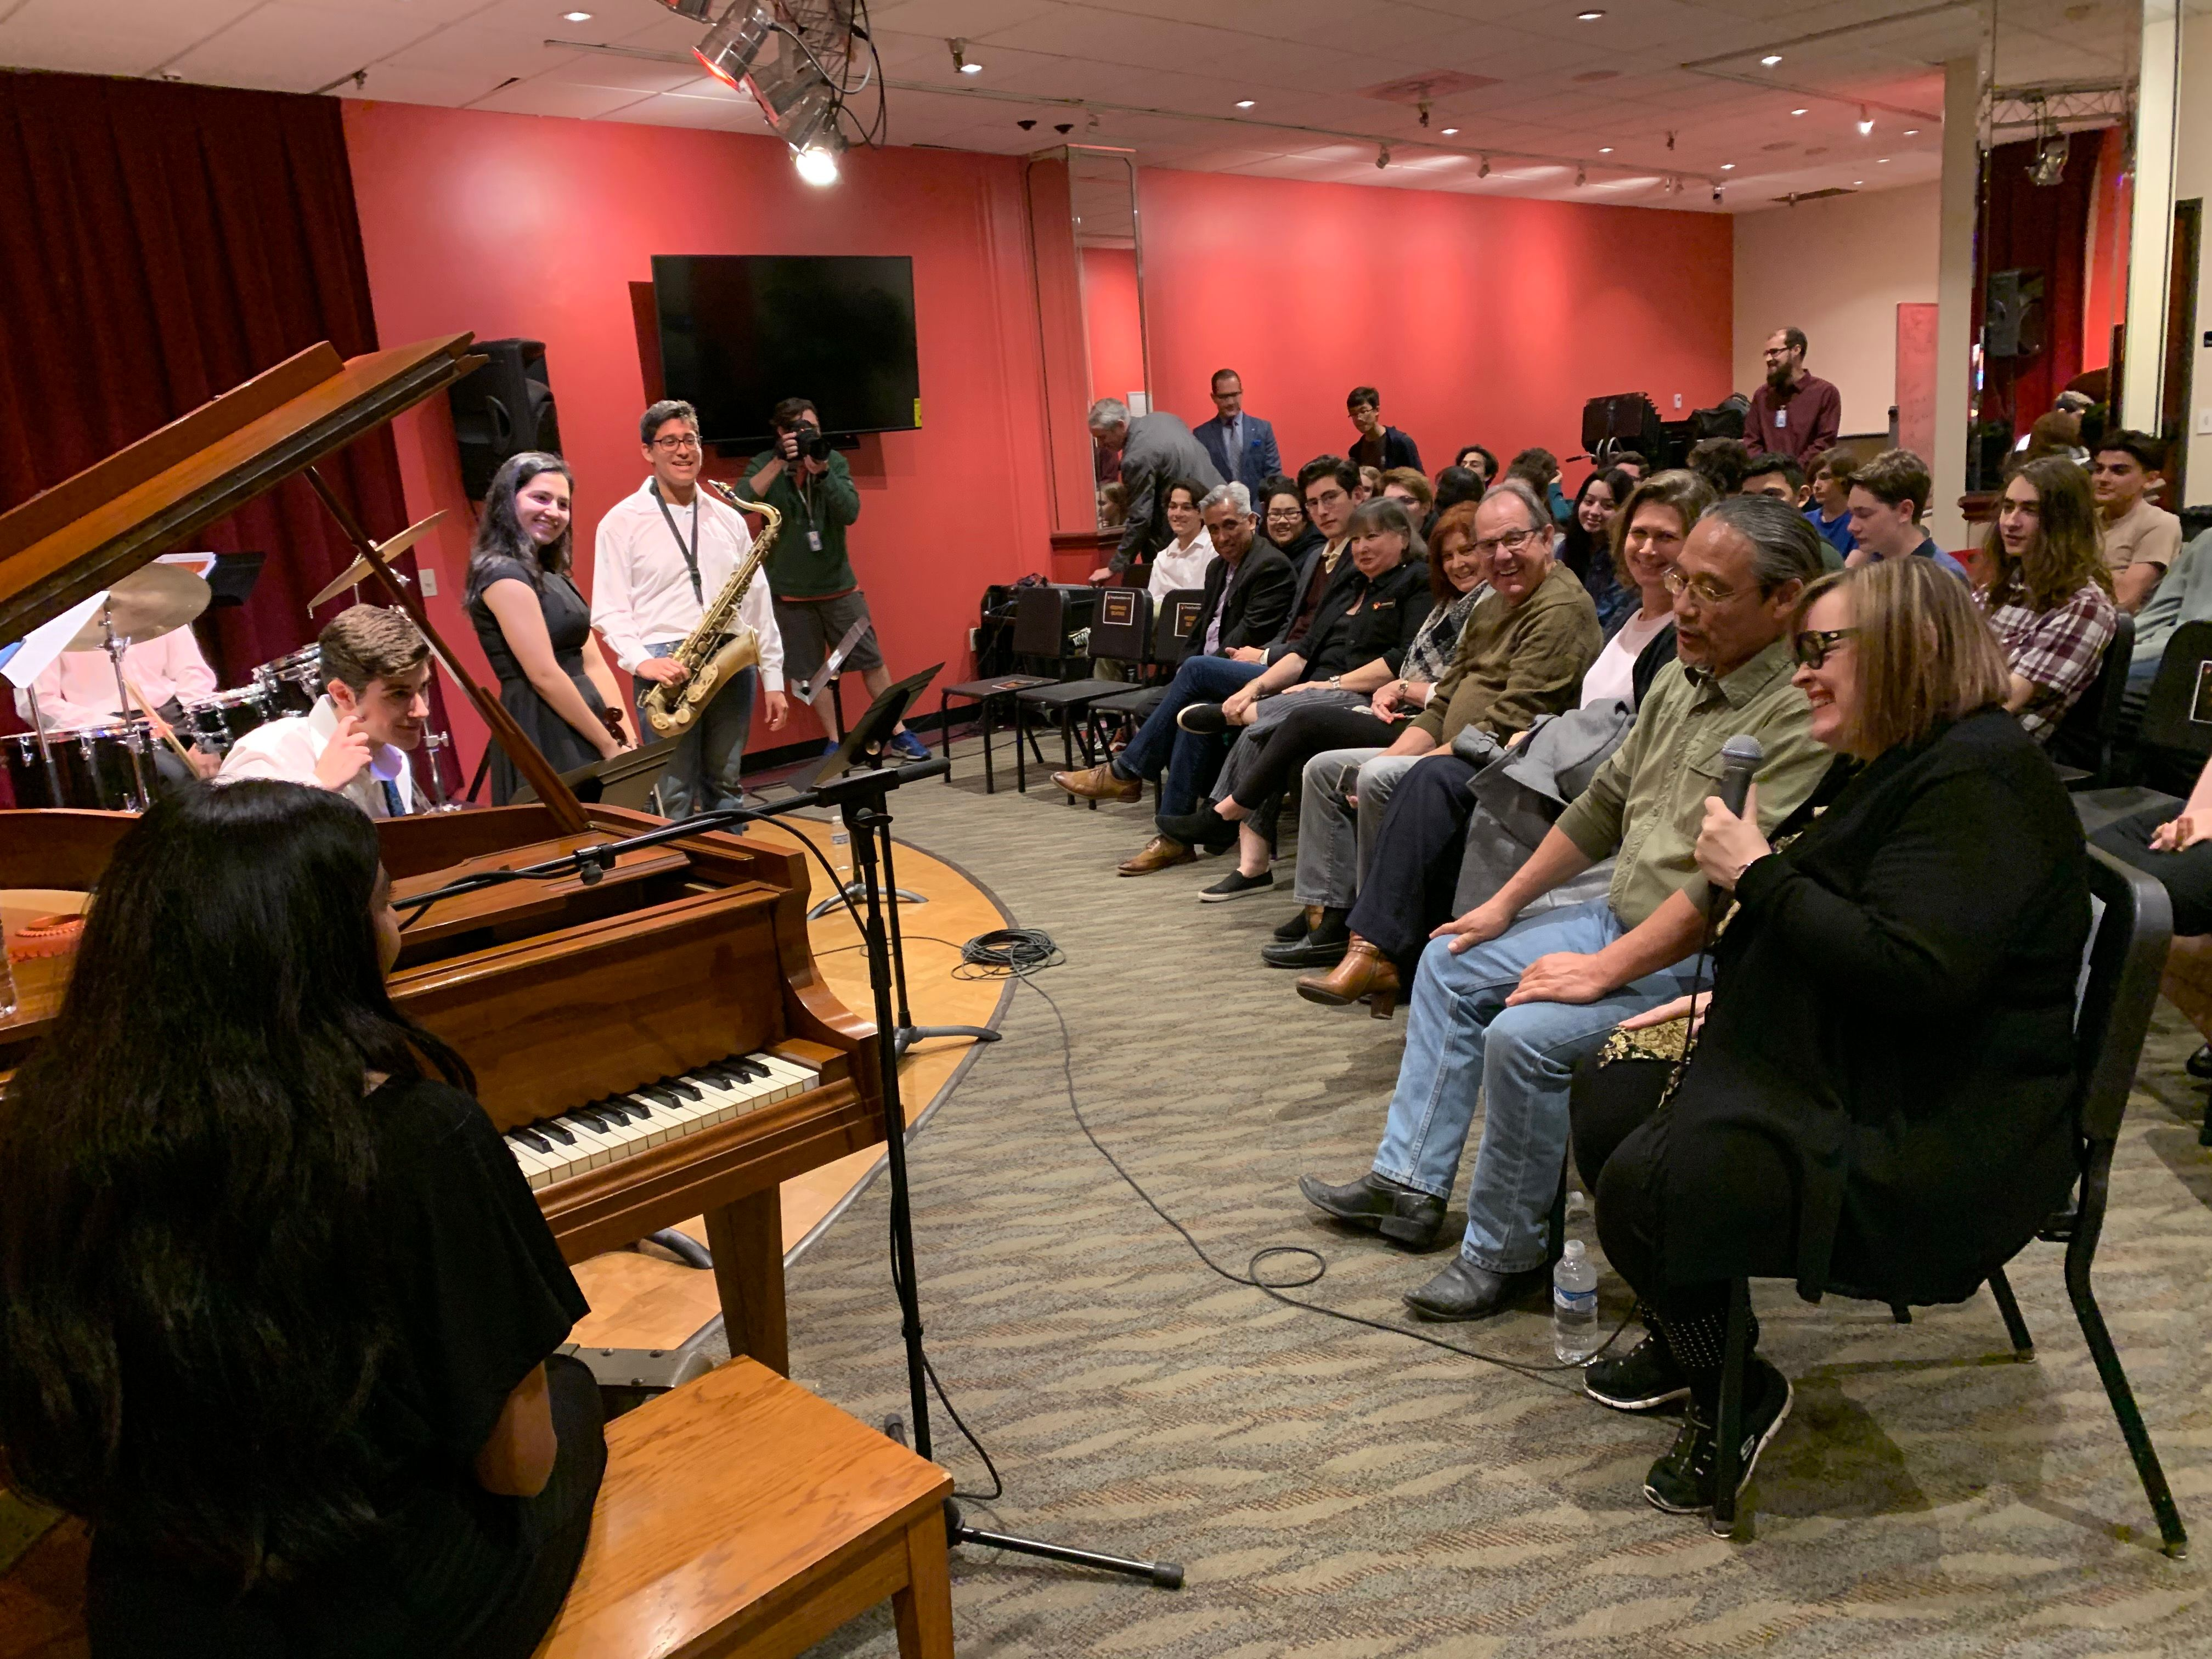 Diane Schuur Master Class for Jazz Students at the Orange County School of the Arts